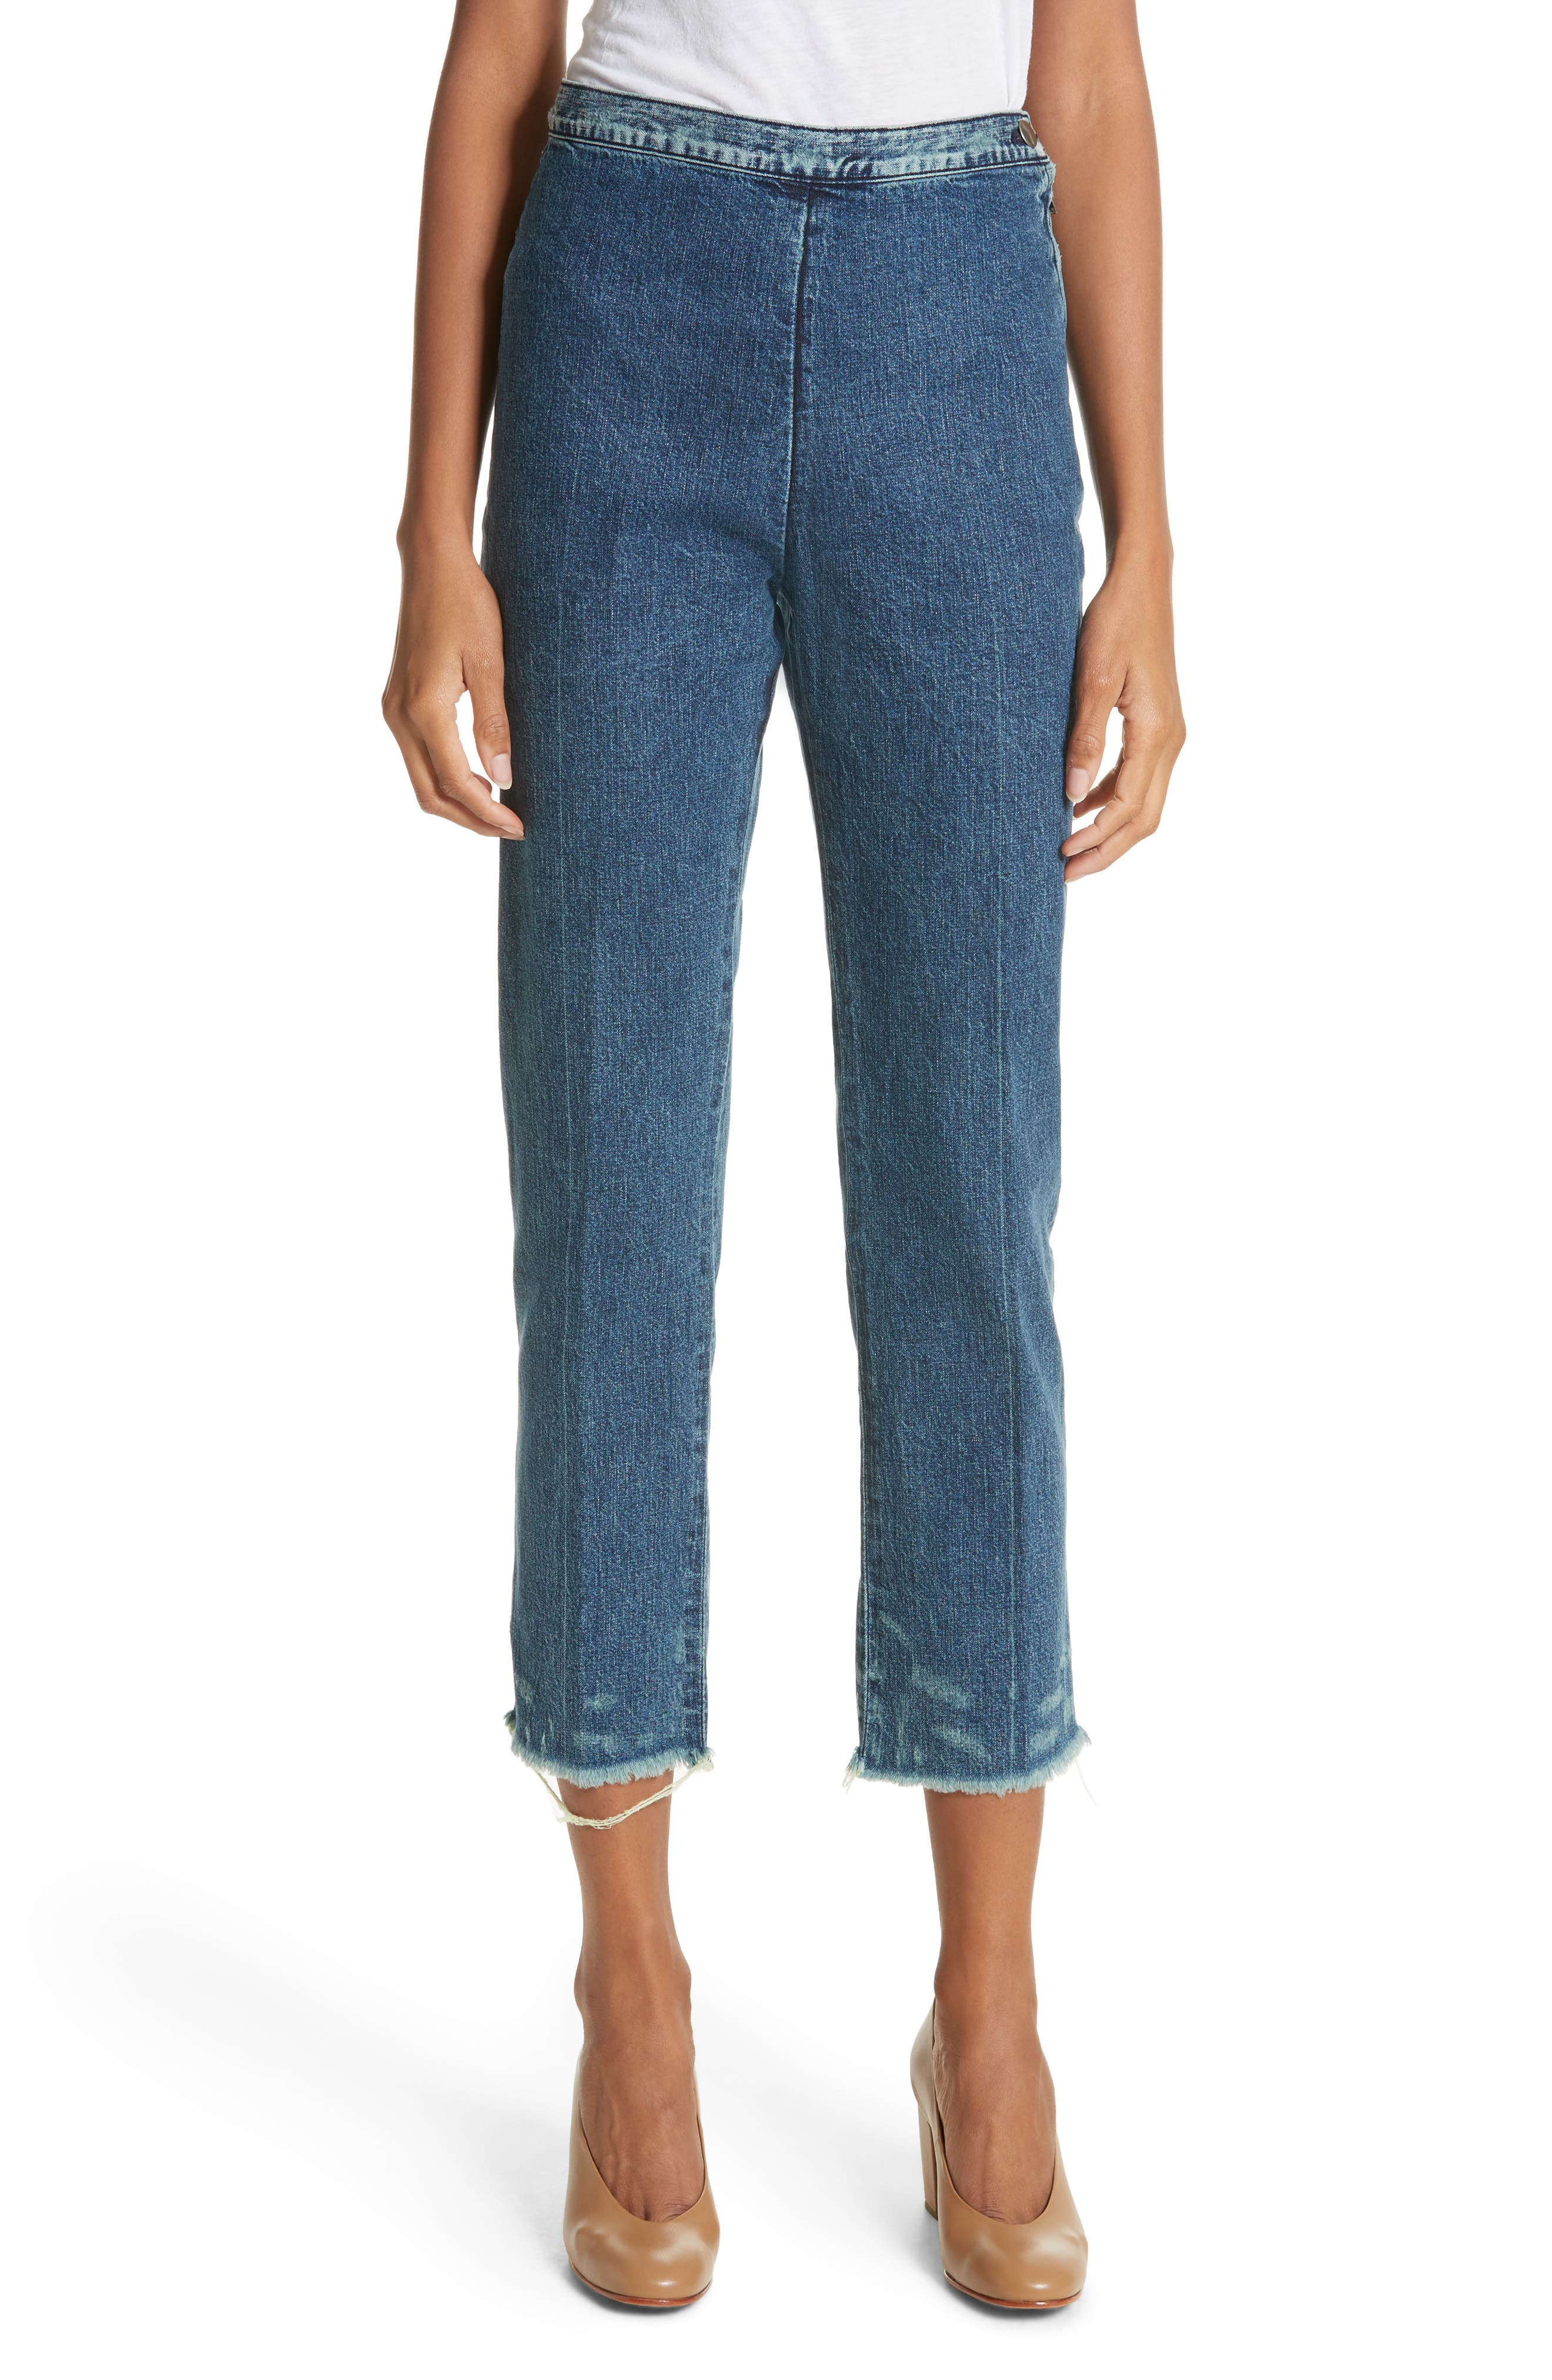 Alternate Image 1 Selected - Rachel Comey Fletcher Slim Straight Cropped Jeans (Classic Indigo)